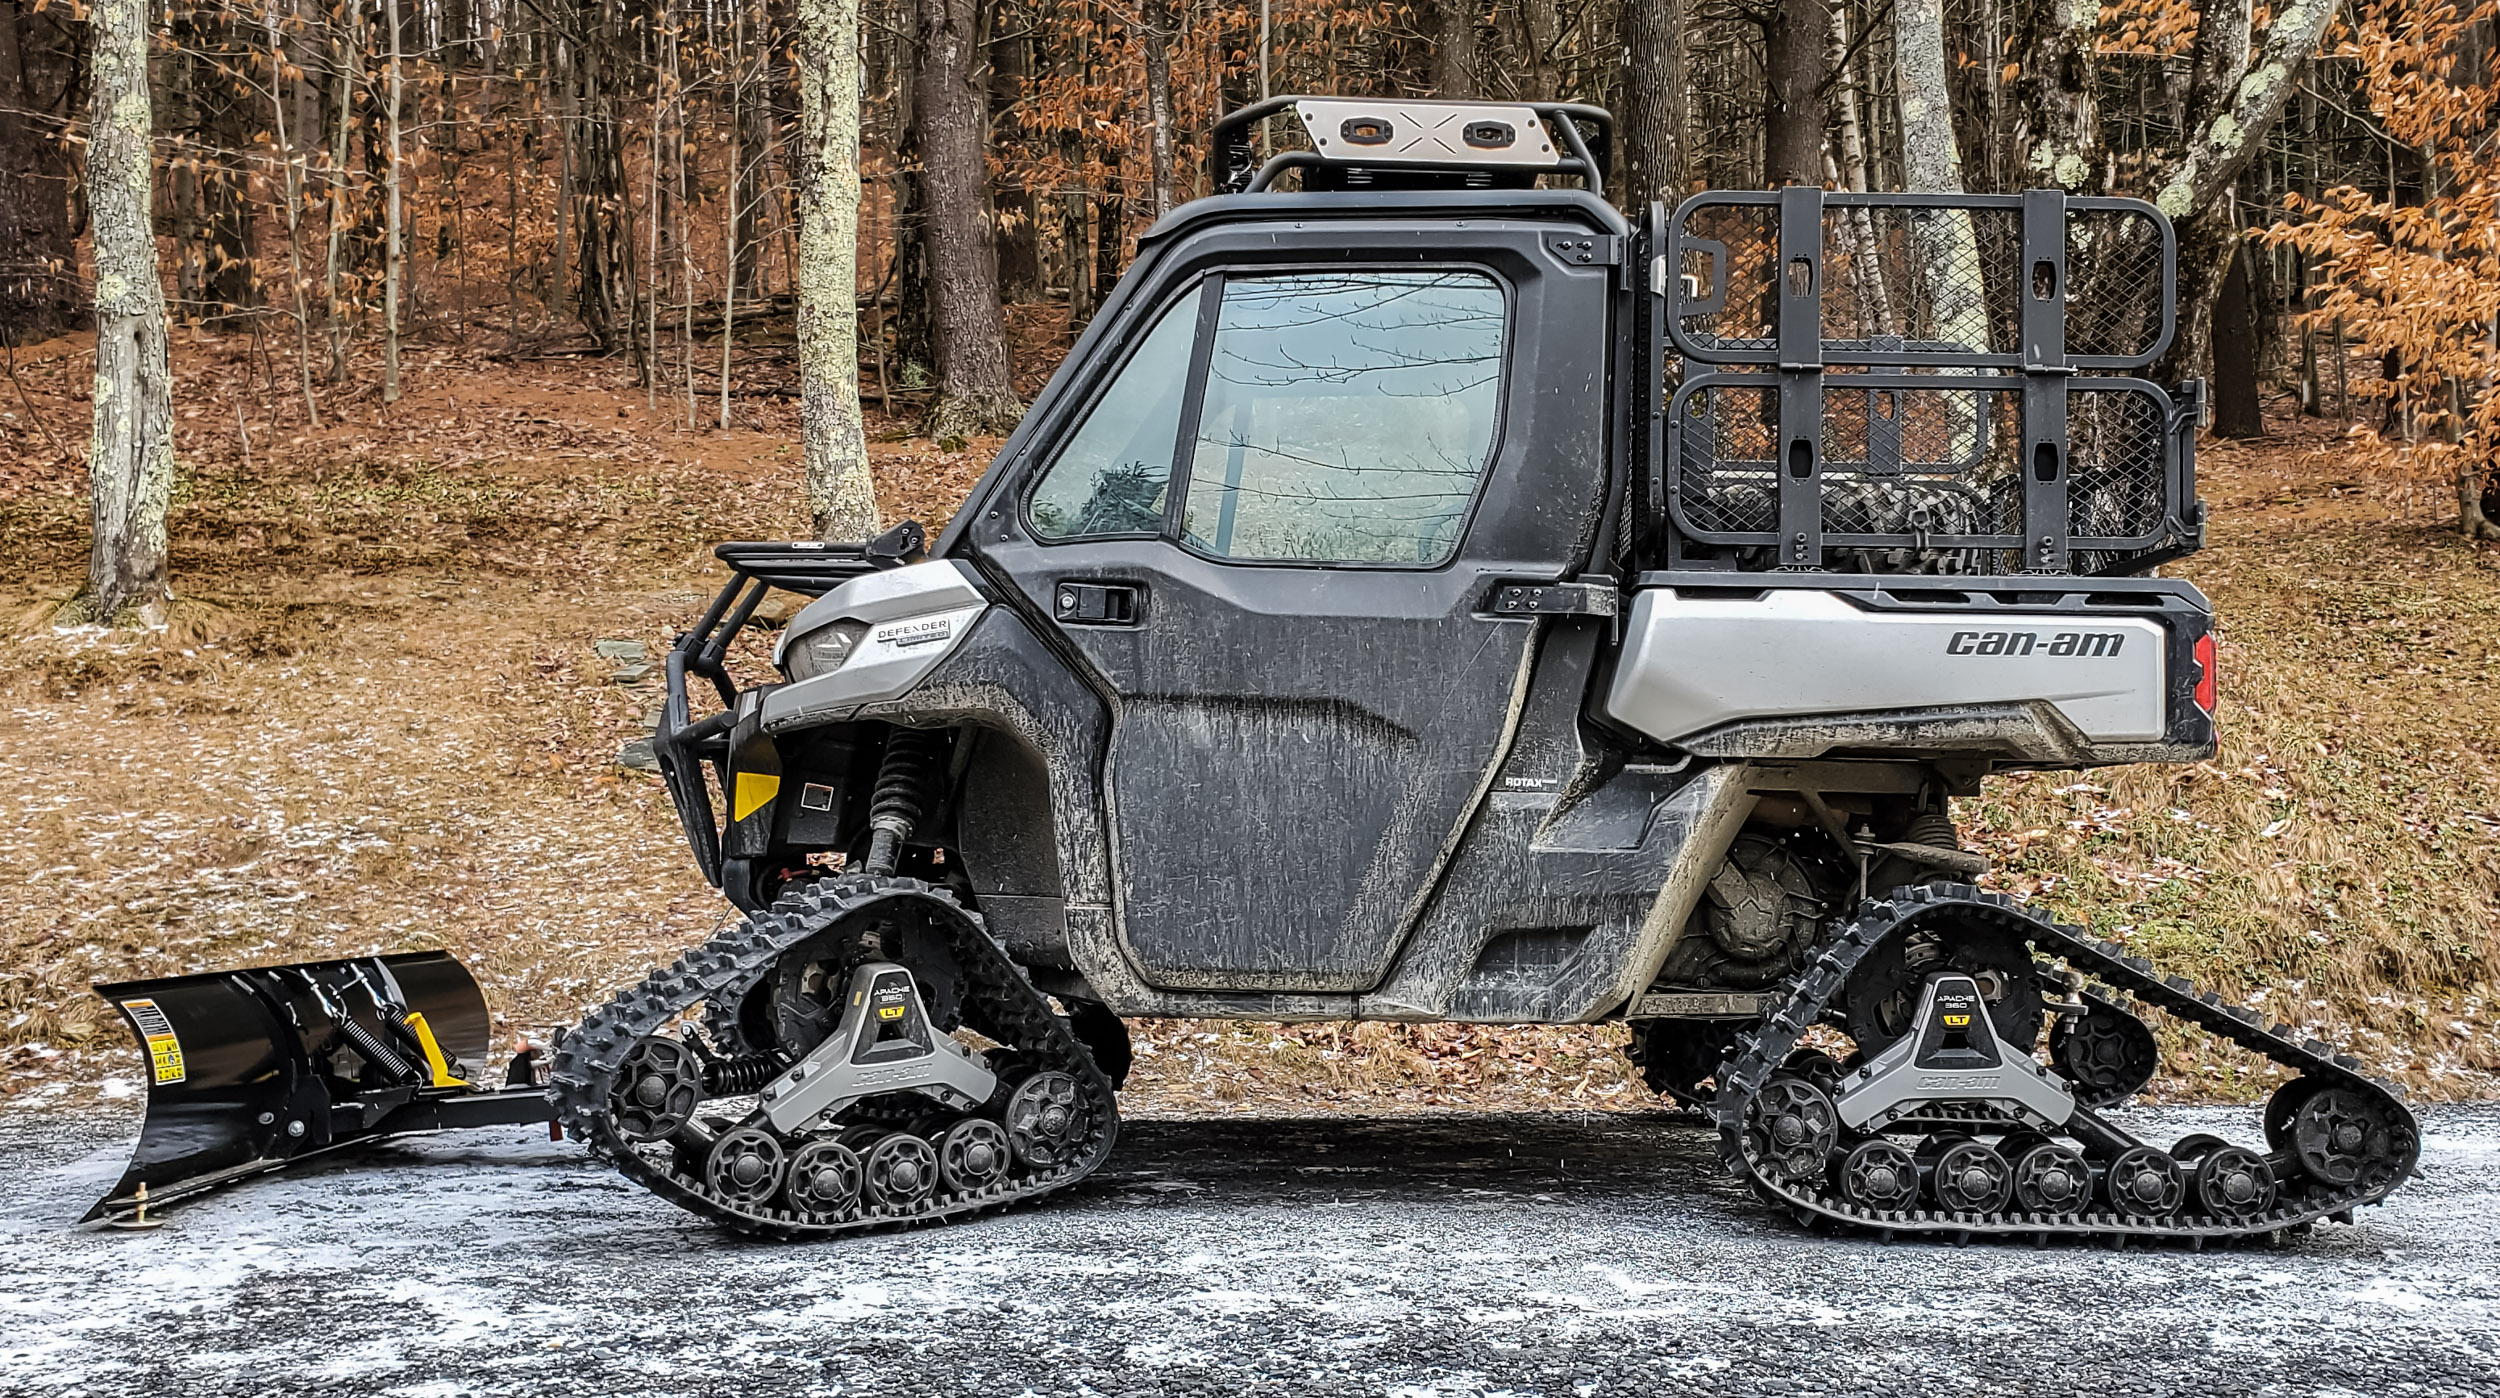 2021 Can-Am Defender Limited on tracks with plow